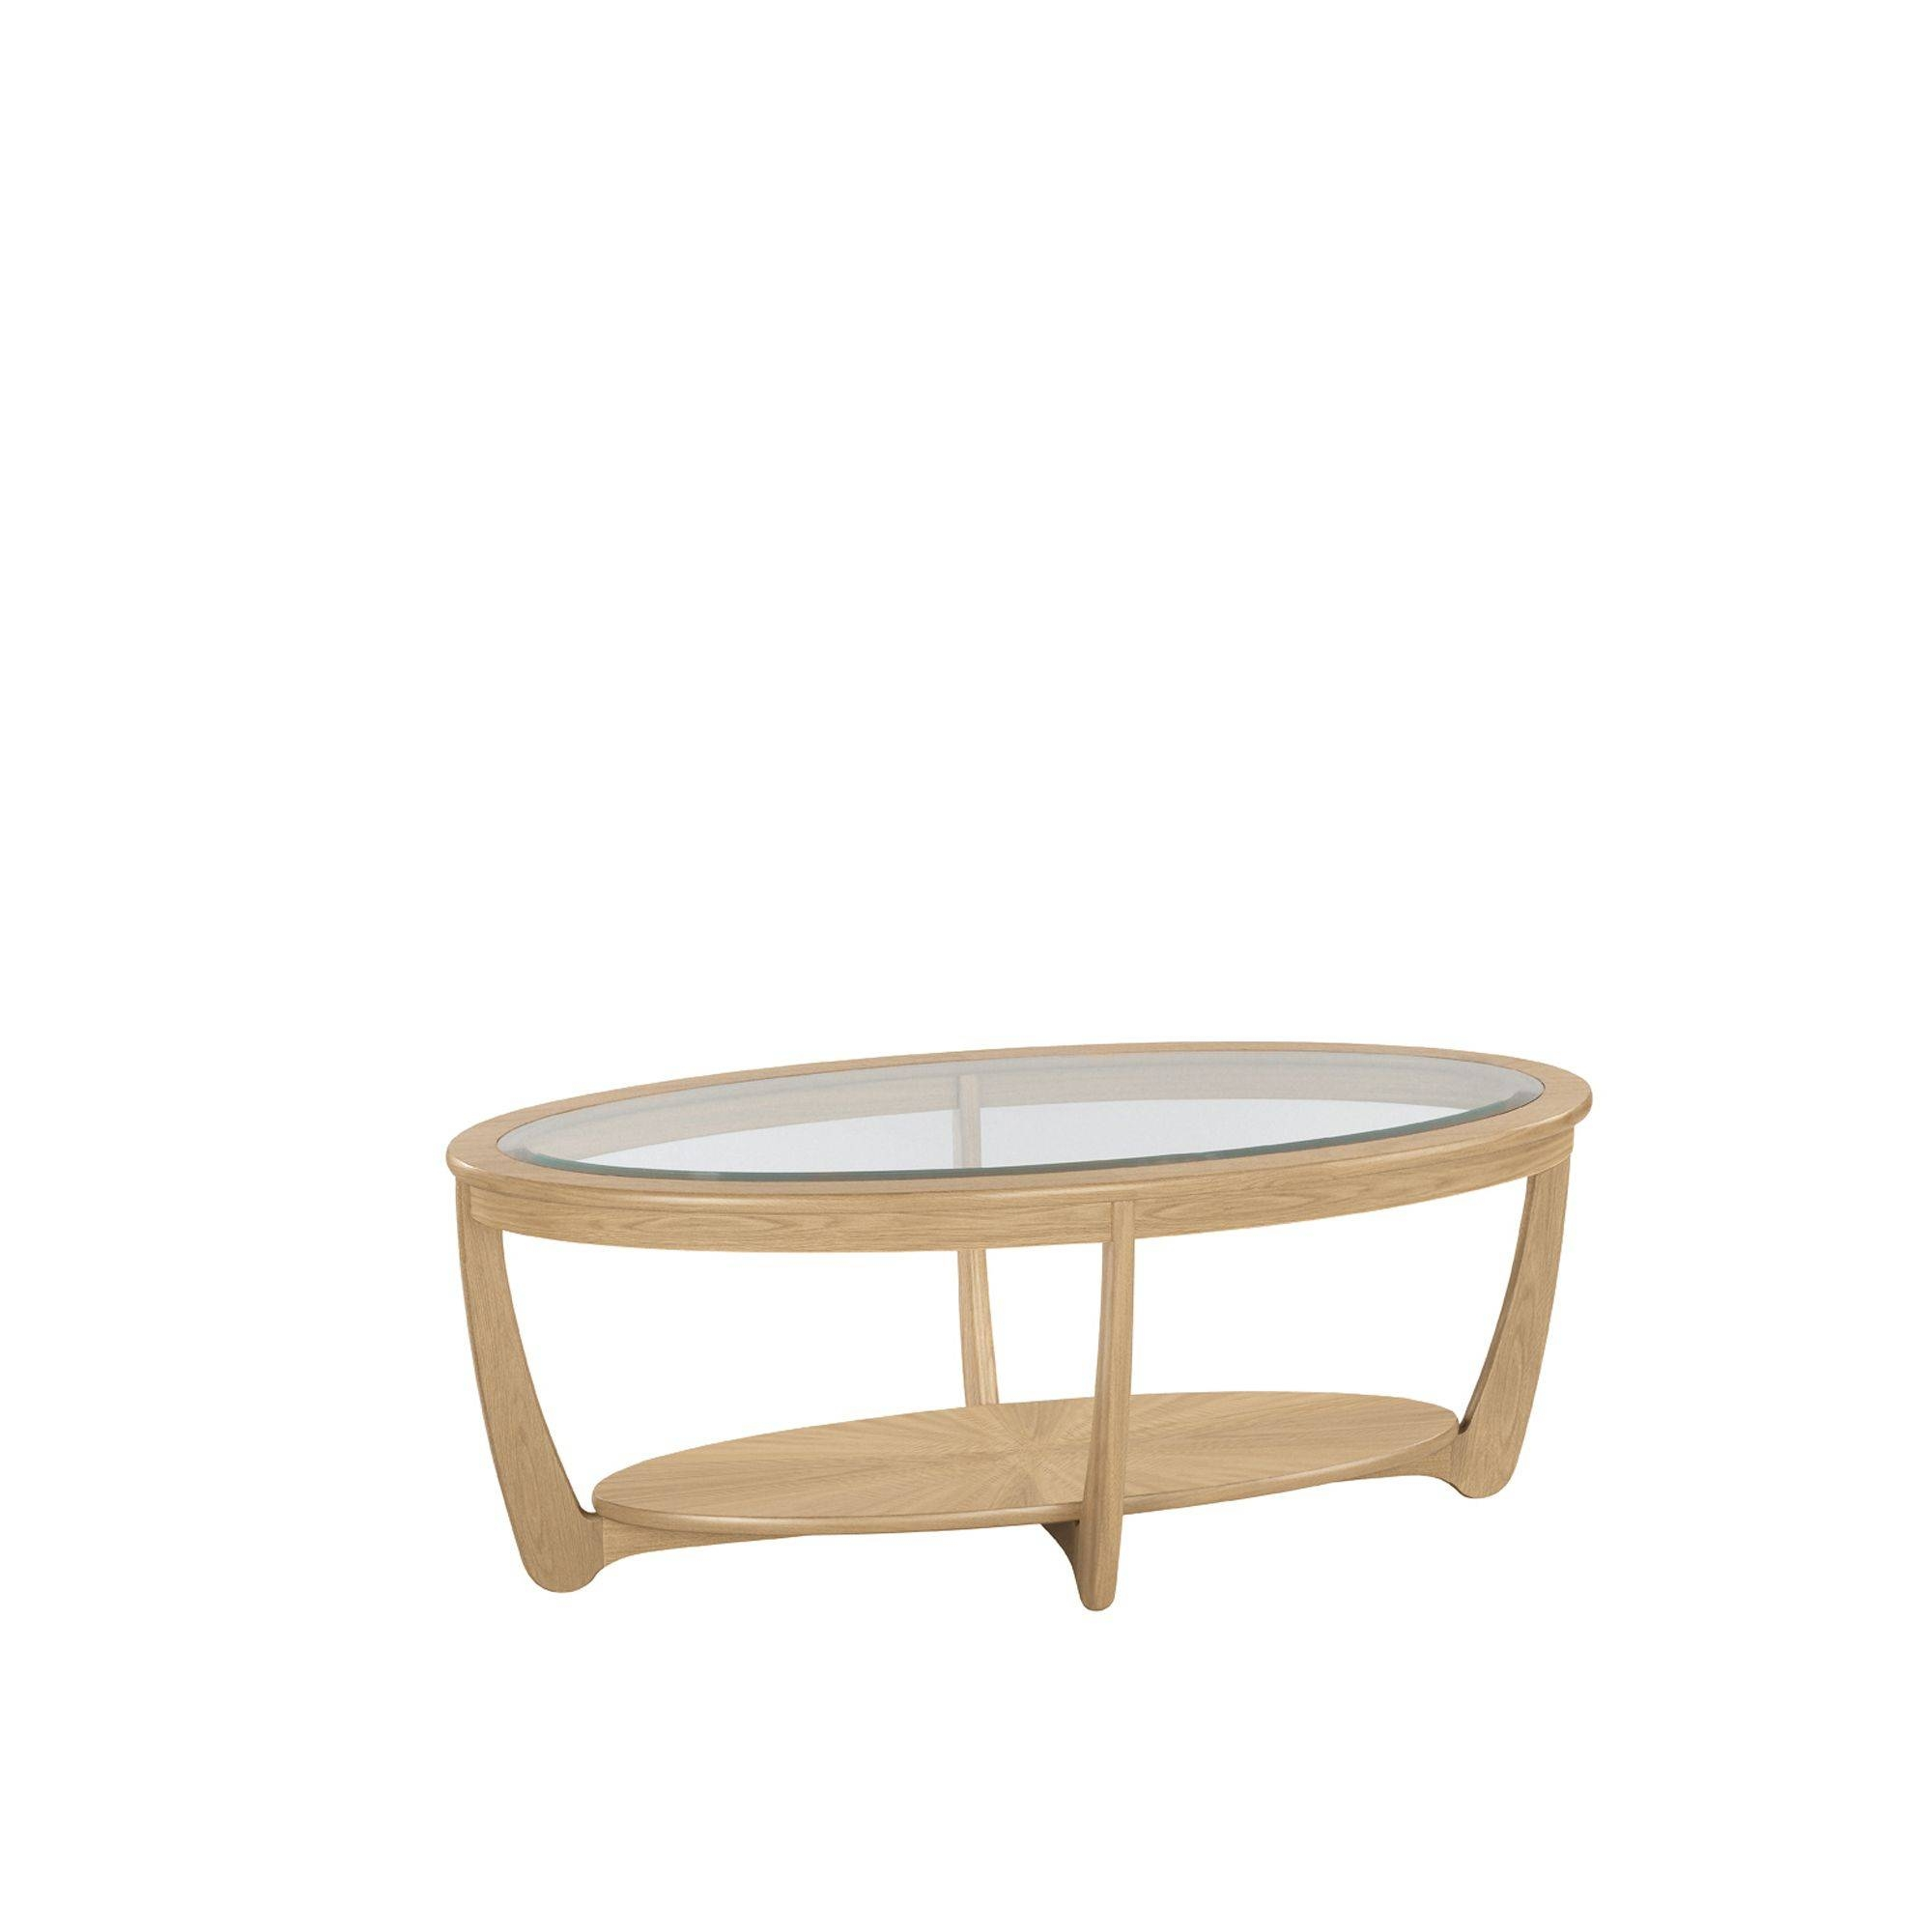 Nathan Shades Oak Glass Top Oval Coffee Table - Coffee Tables throughout Glass Oak Coffee Tables (Image 13 of 15)